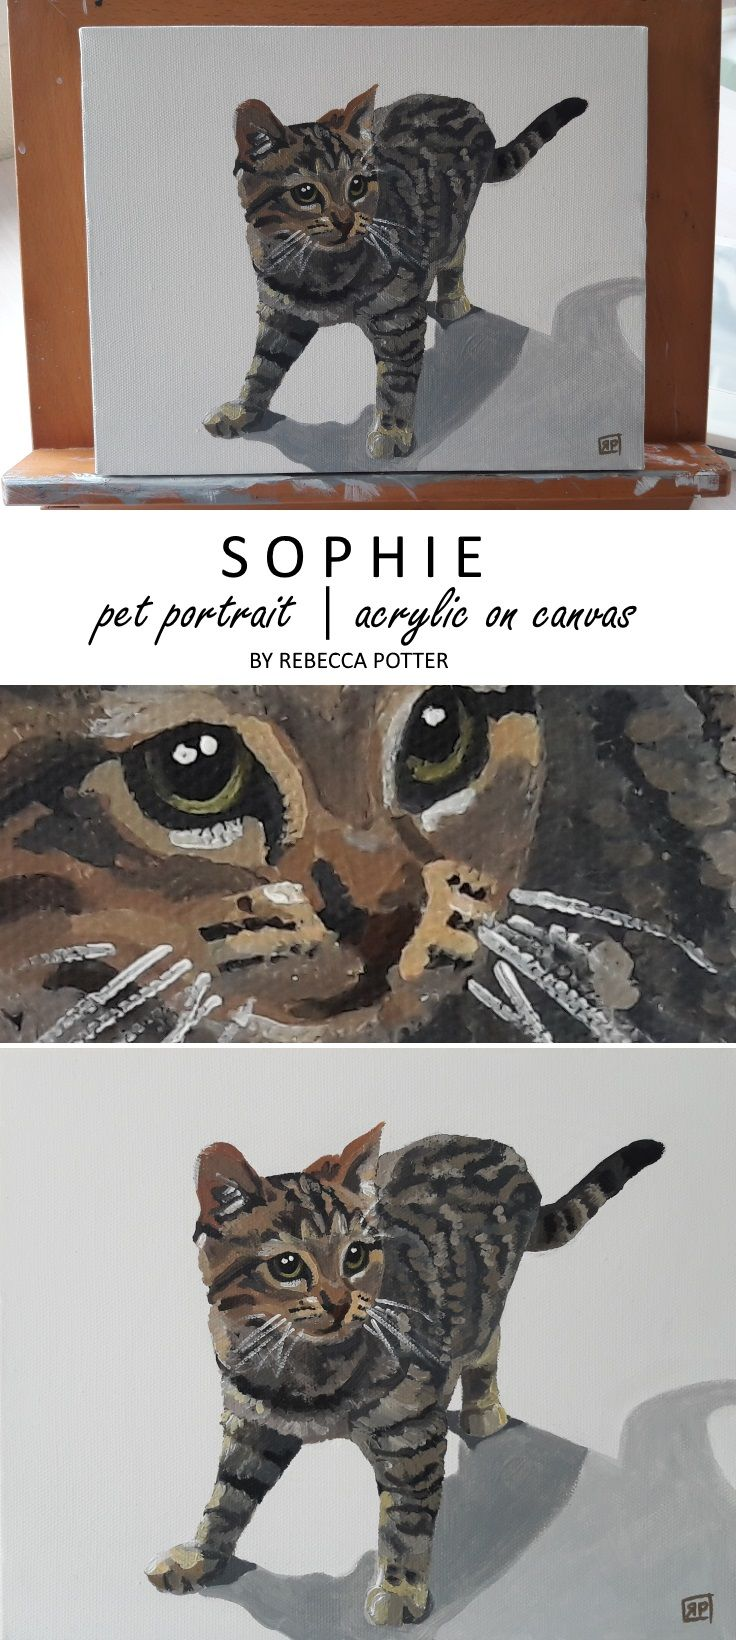 Cat Pet Portrait. Sophie the kitten painted in Acrylic on Canvas 8 x 10 by Rebecca Potter. June 2017 [SOLD]